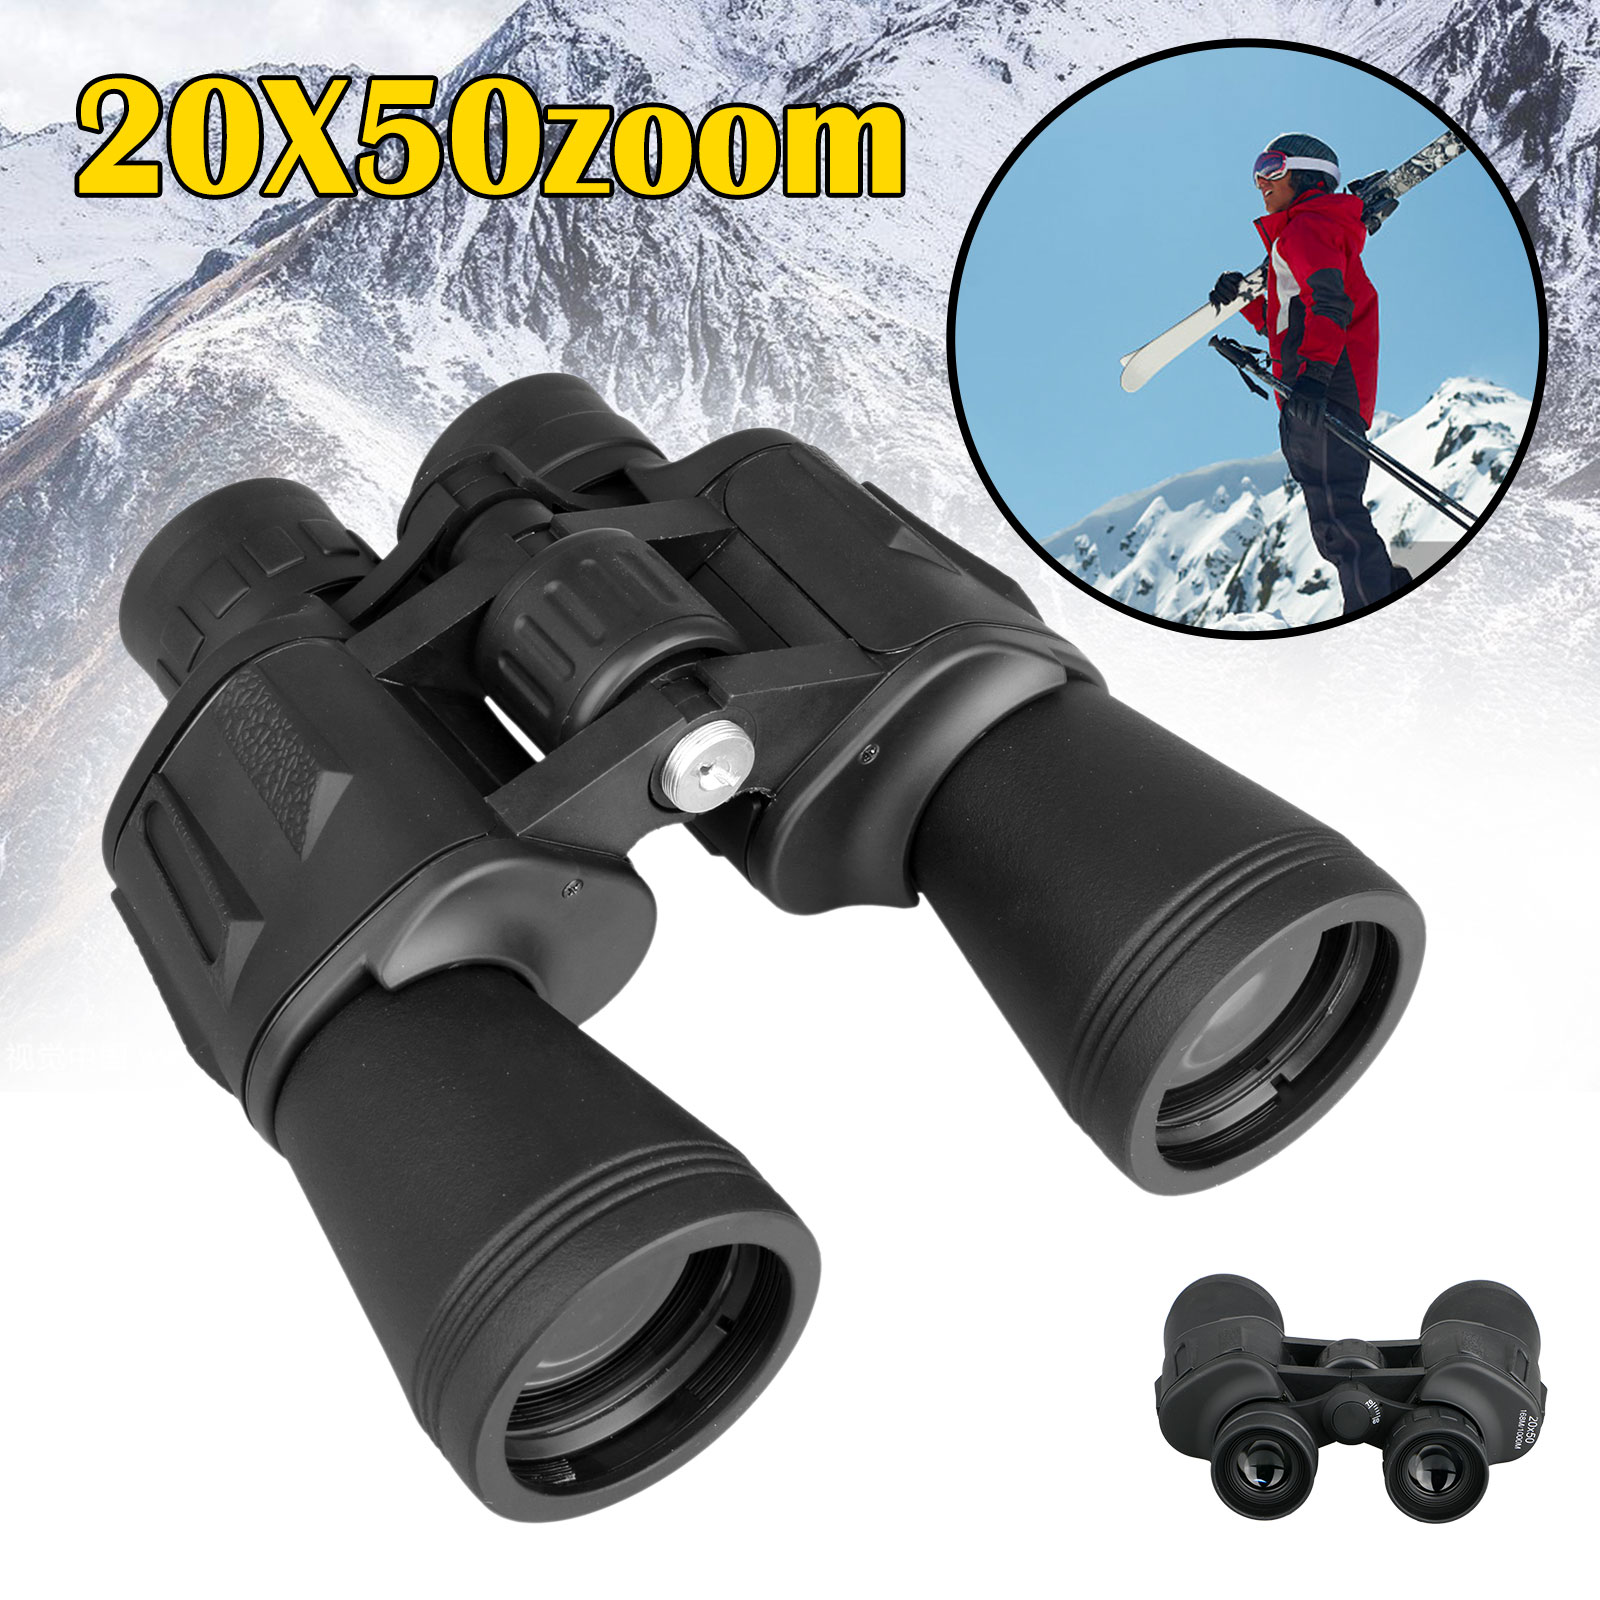 EEEkit 20x50 High Powered Binoculars with Weak Light Night Vision Waterproof Clear Bird Watching Great for Outdoor Sports Games, Travelling, Concerts, Hunting and Stargazing ect.